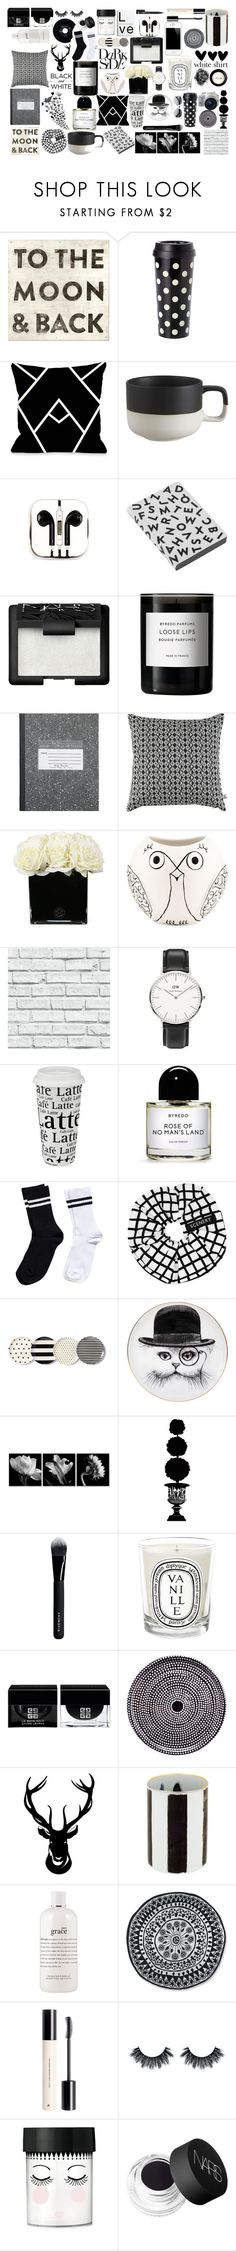 """""""black and white fillers"""" by juliehalloran ❤ liked on Polyvore featuring Sugarboo Designs, Kate Spade, One Bella Casa, CB2, PhunkeeTree, Nuuna, NARS Cosmetics, Byredo, Bococo and Hervé Gambs"""